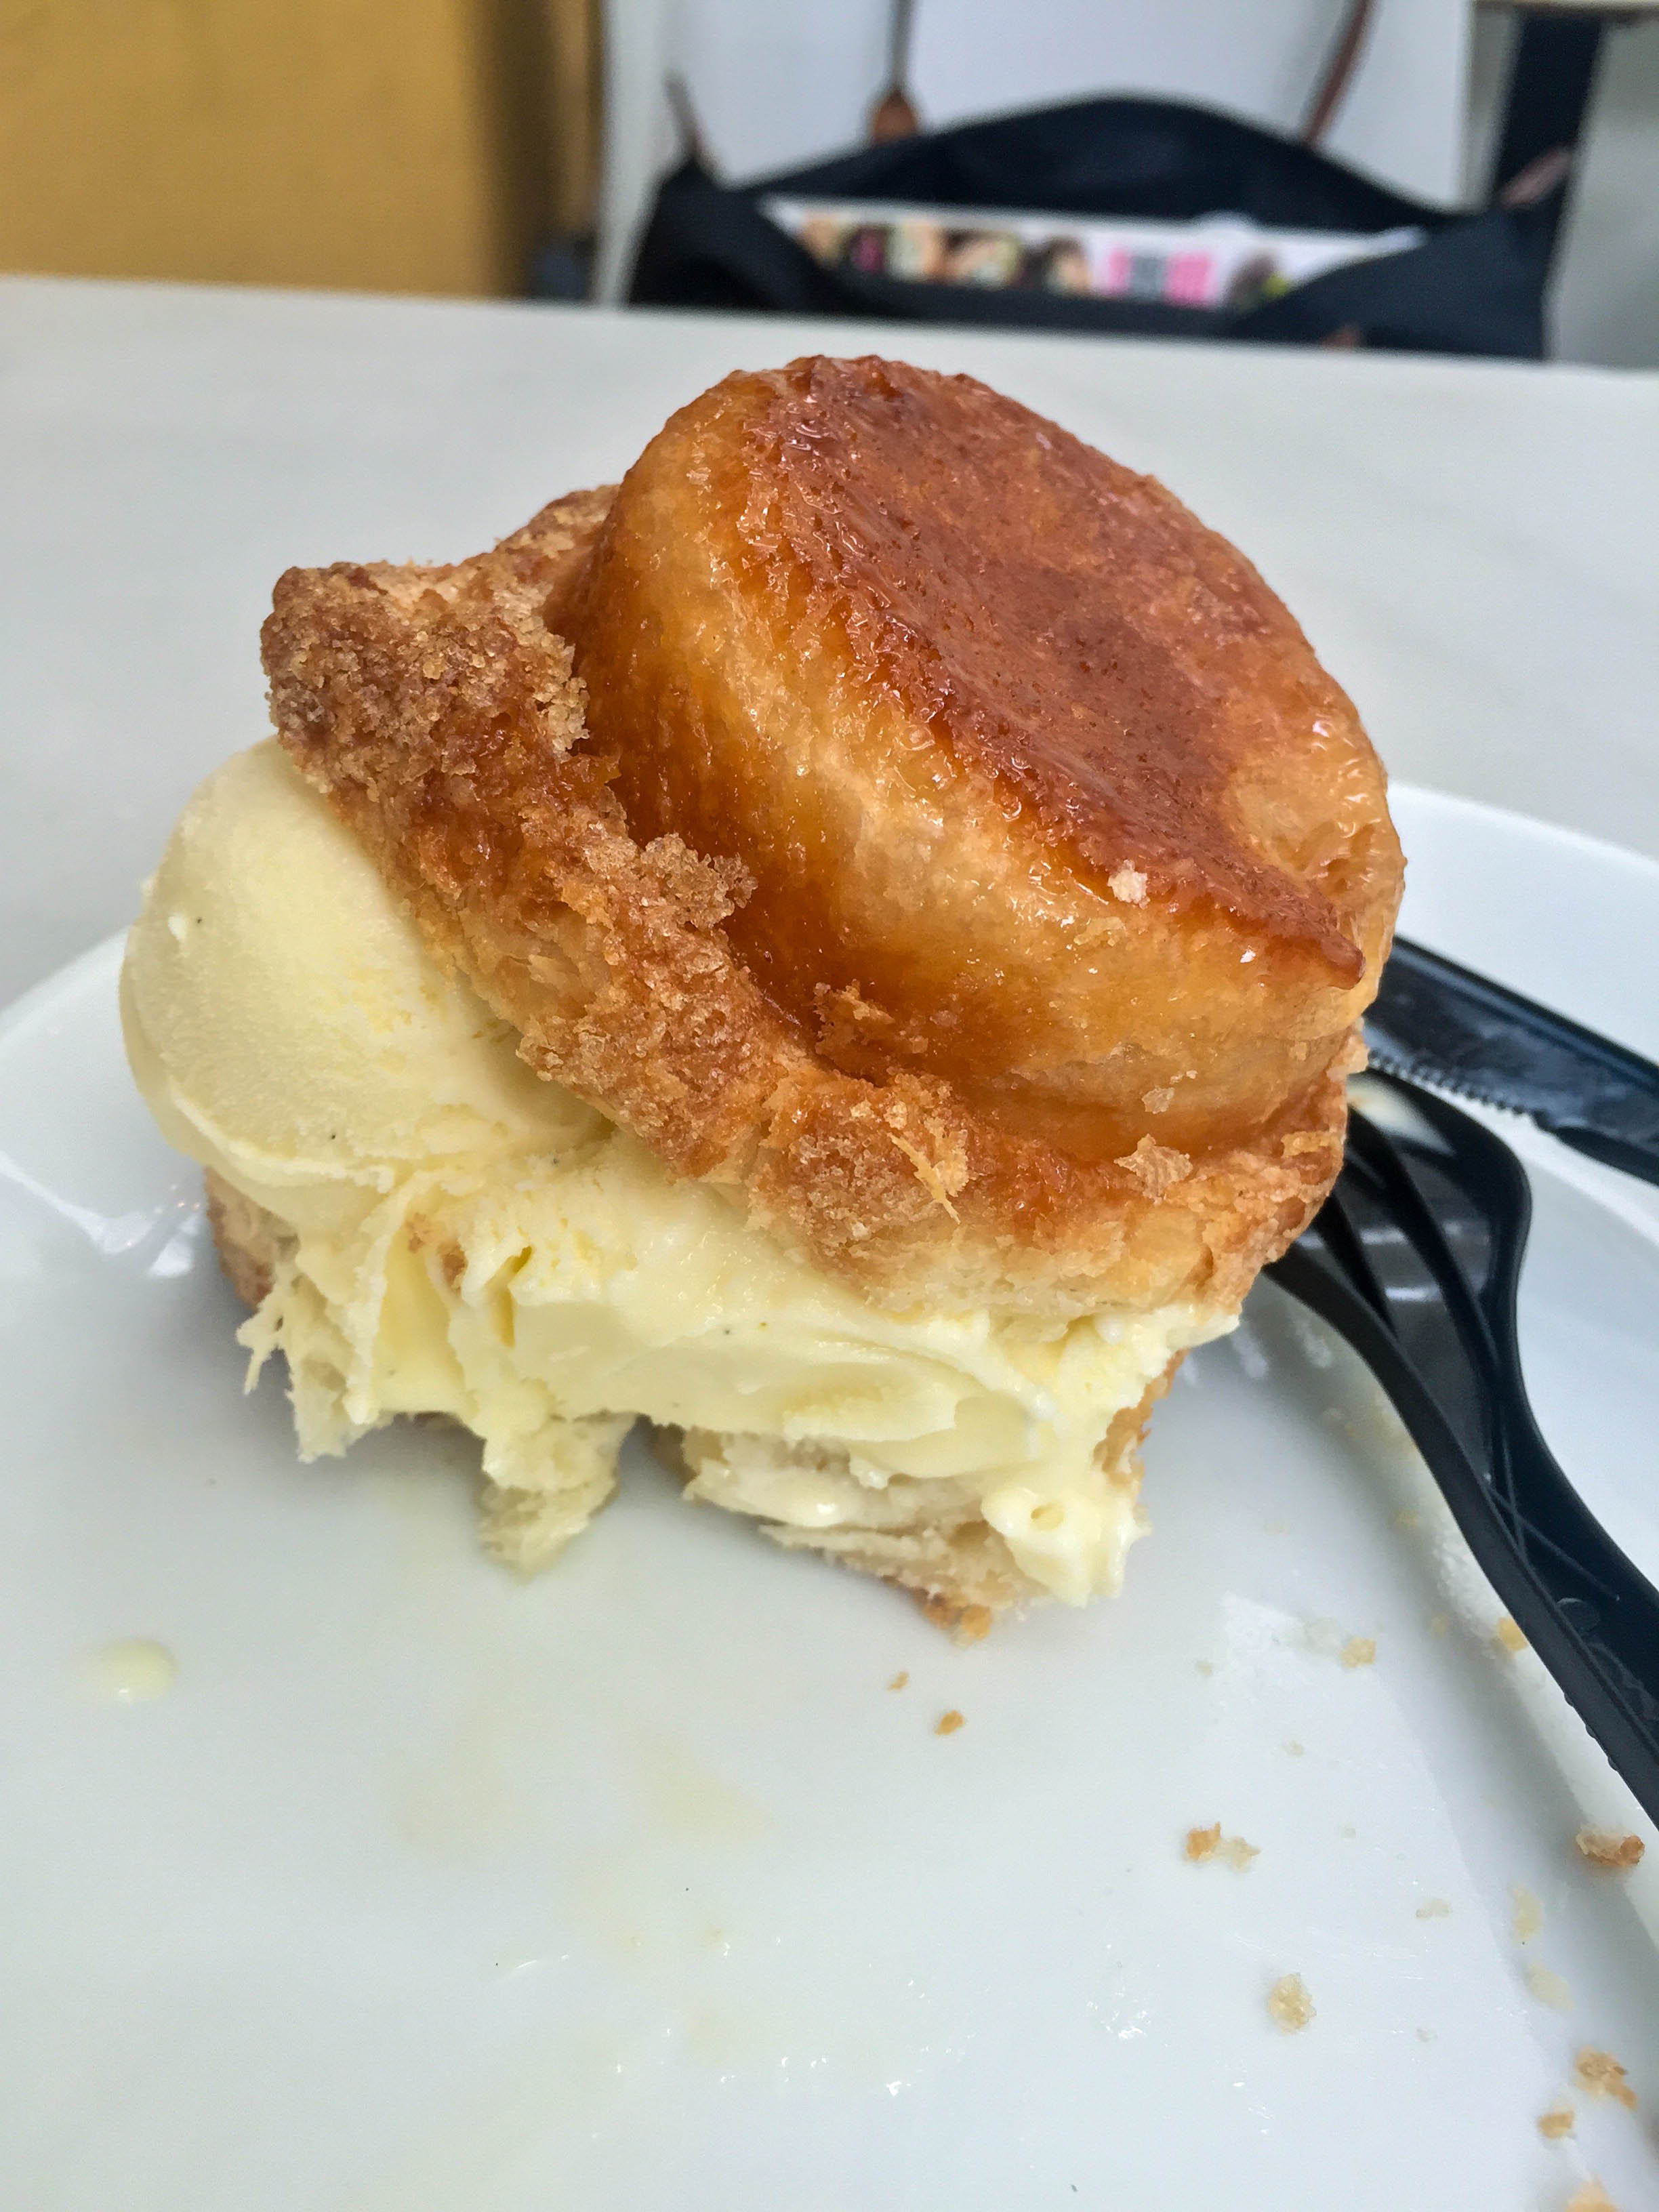 Delicious! I ate it for breakfast. I mean it was lunch already in NYC. Whatever  Photo Cred: The Buttery Existence